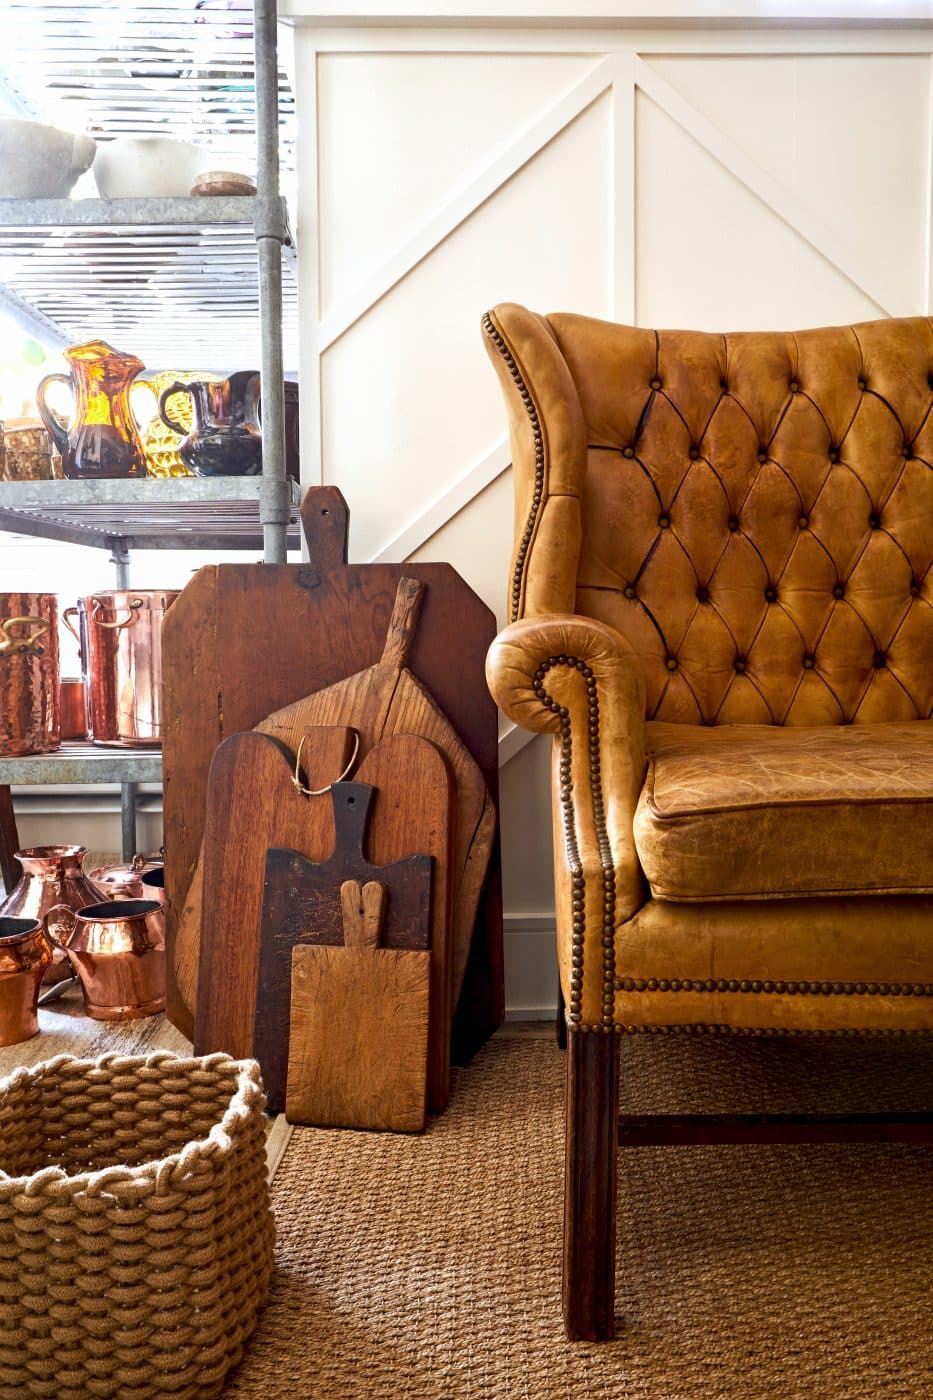 At Retzer's previous, Lincoln Park shop, an early-20th-century tufted leather settee and a collection of antique breadboards and cutting boards